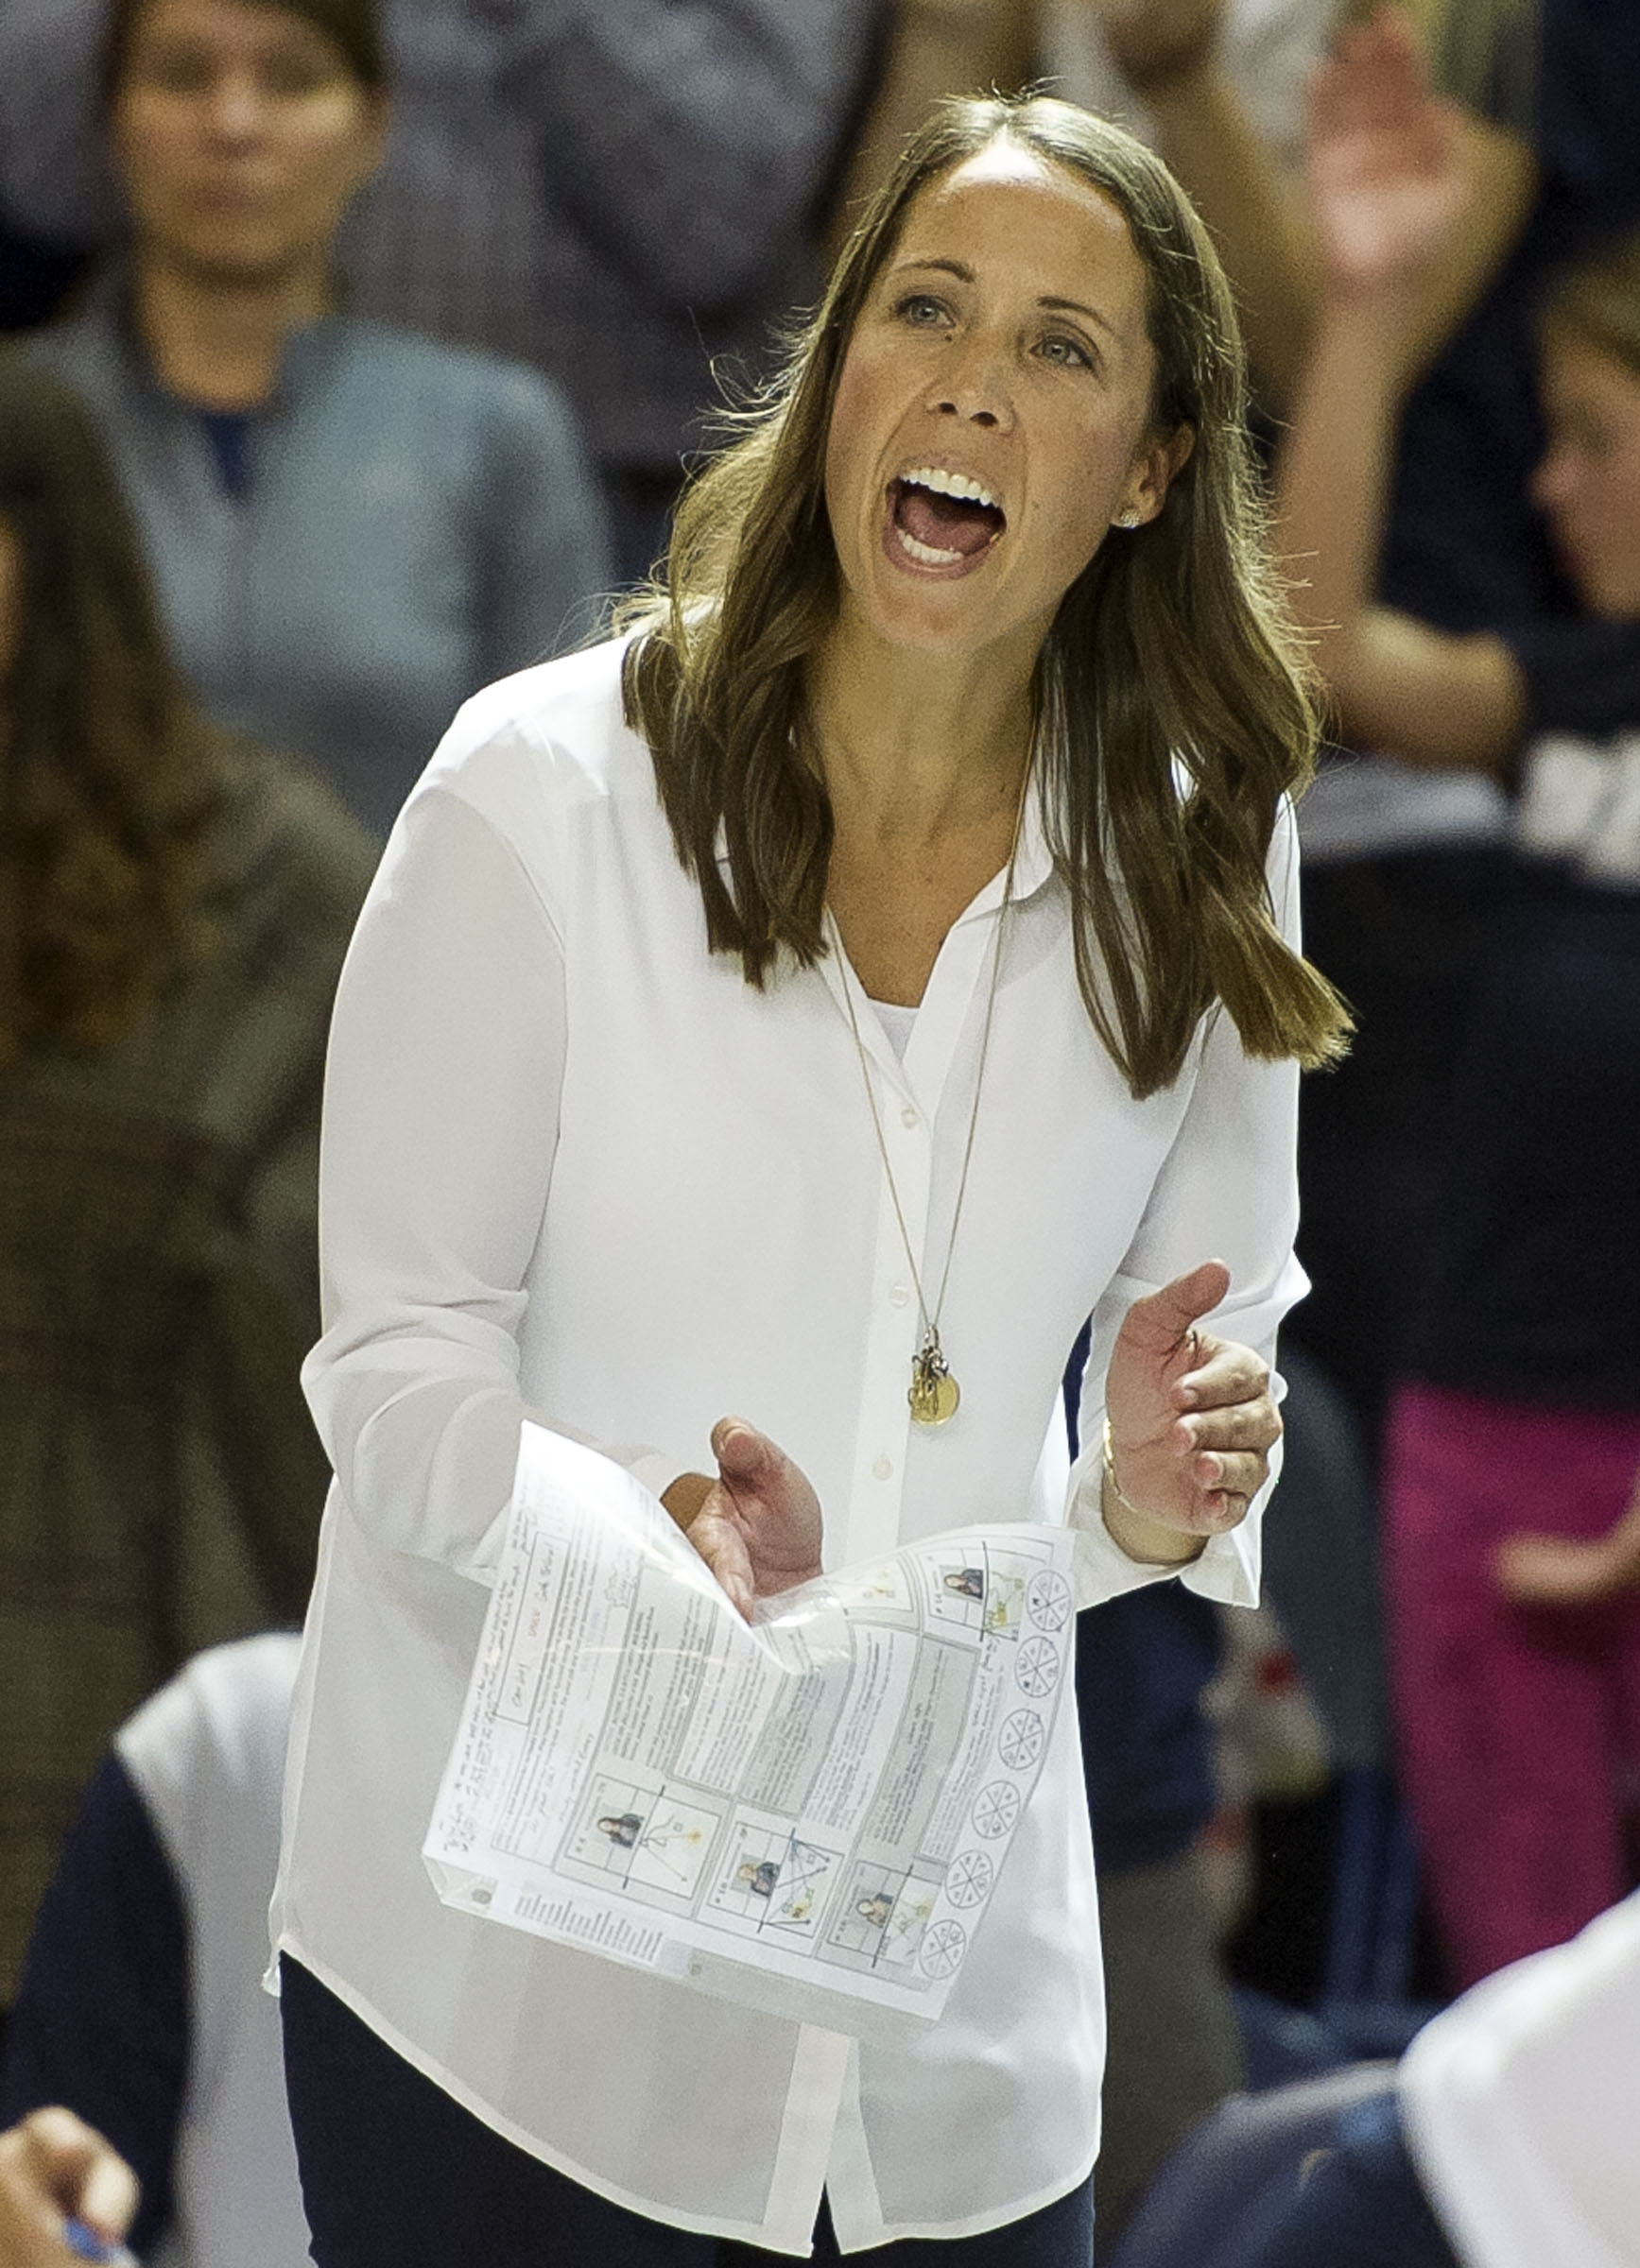 BYU head coach Heather Olmstead cheers on her team during an NCAA volleyball playoff game against UNLV in Provo on Saturday, Dec. 3, 2016. BYU swept UNLV 3-0 to advance onto the Sweet 16.